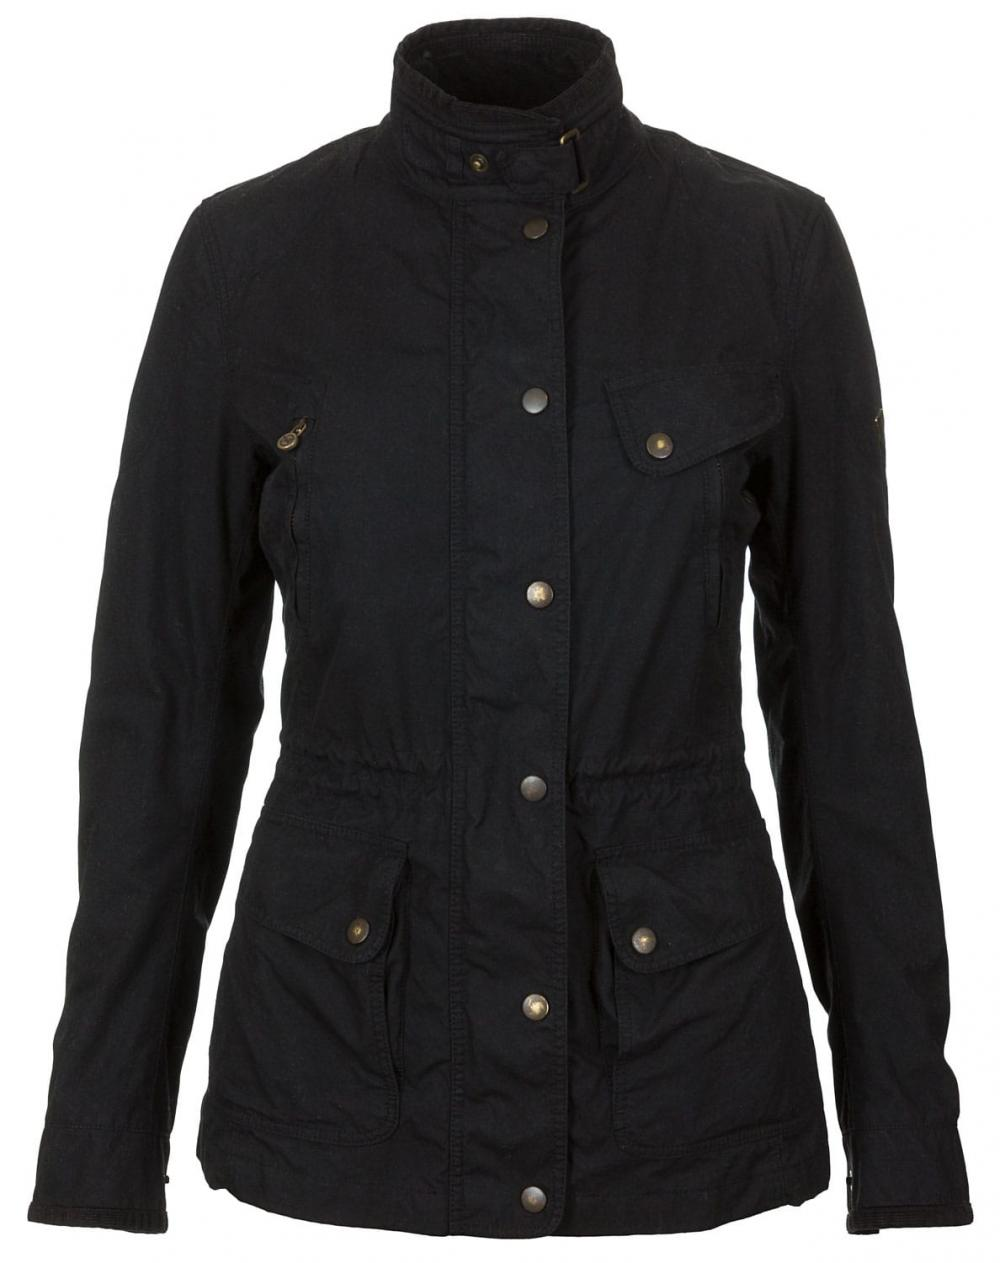 Notting Hill Jacket